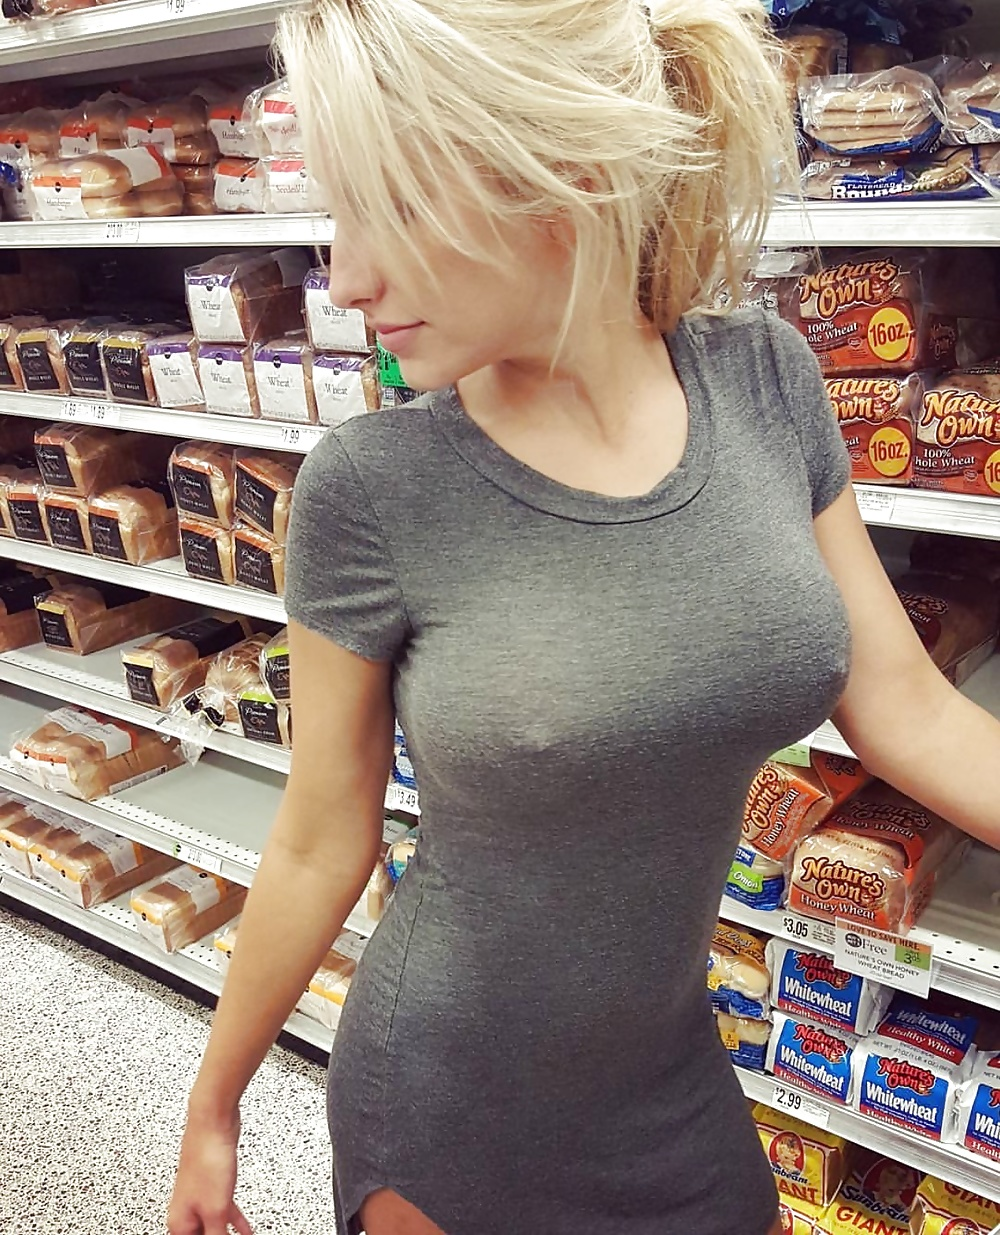 sister forced free tubes look excite and delight #Female#sologirl#breast#naturalbreast#hugetits#exposed#PinkFuckDoll#slut#